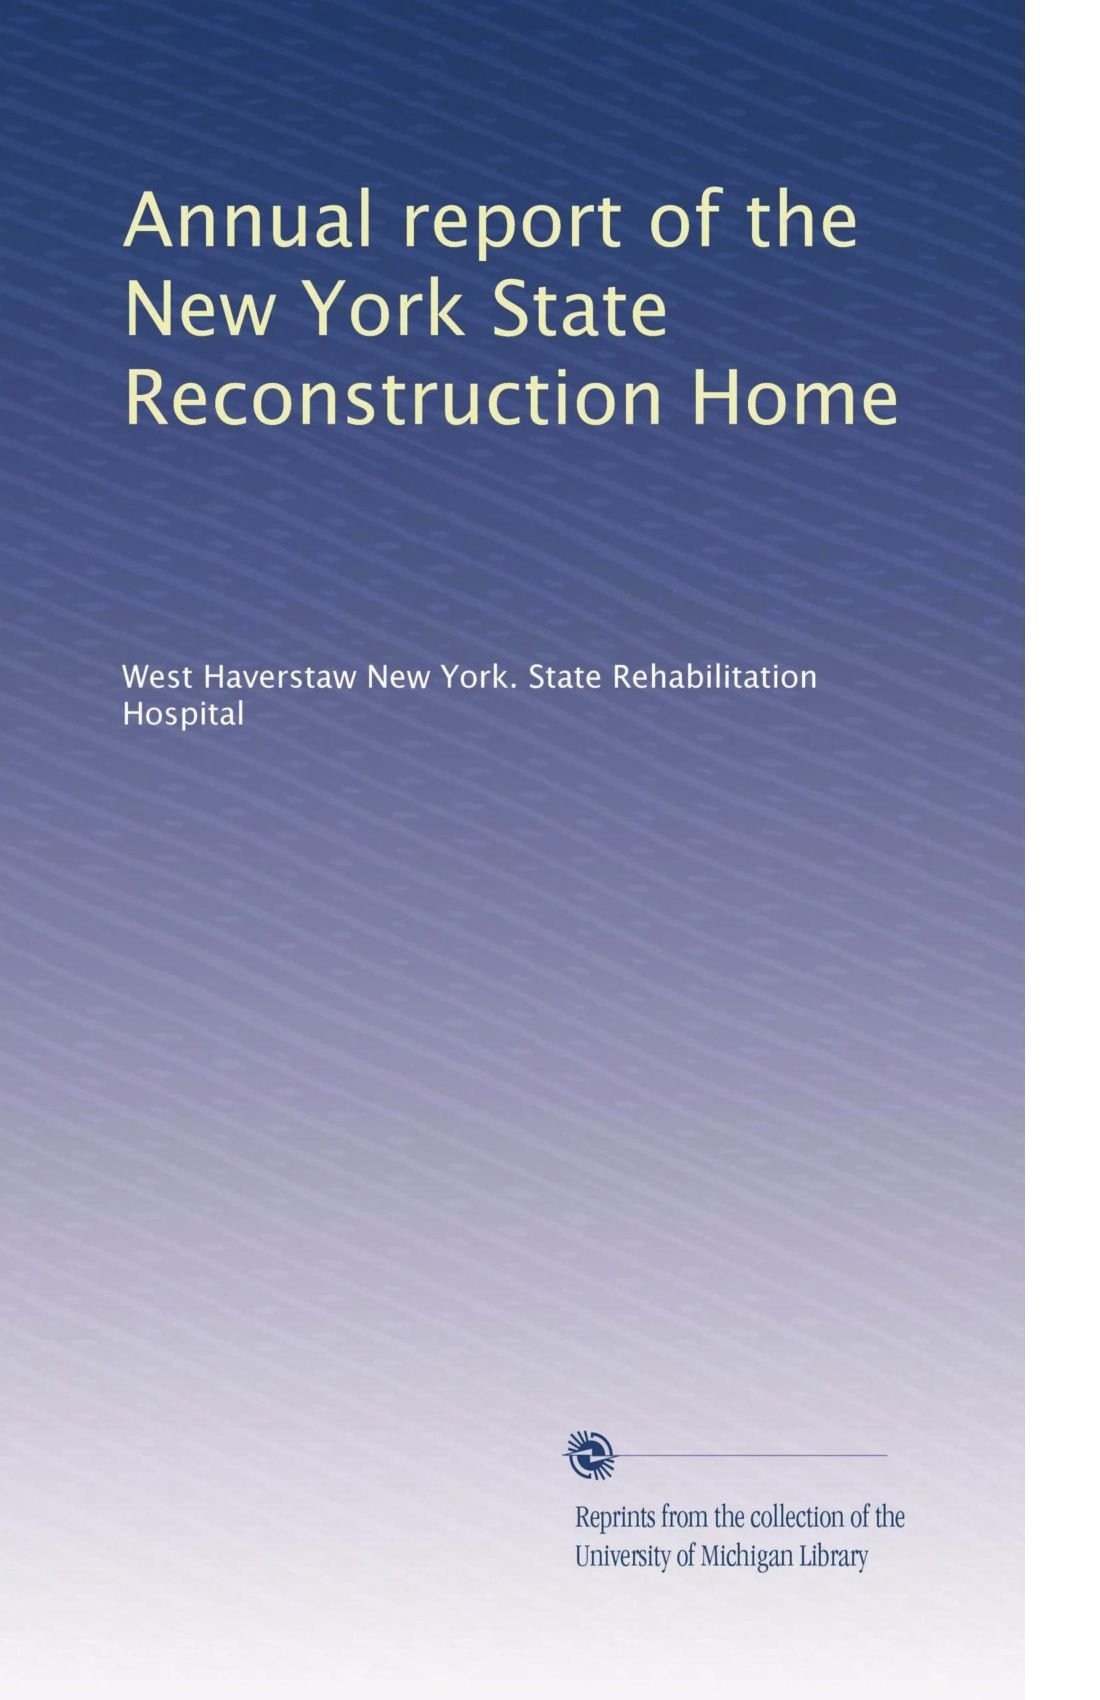 Download Annual report of the New York State Reconstruction Home ebook